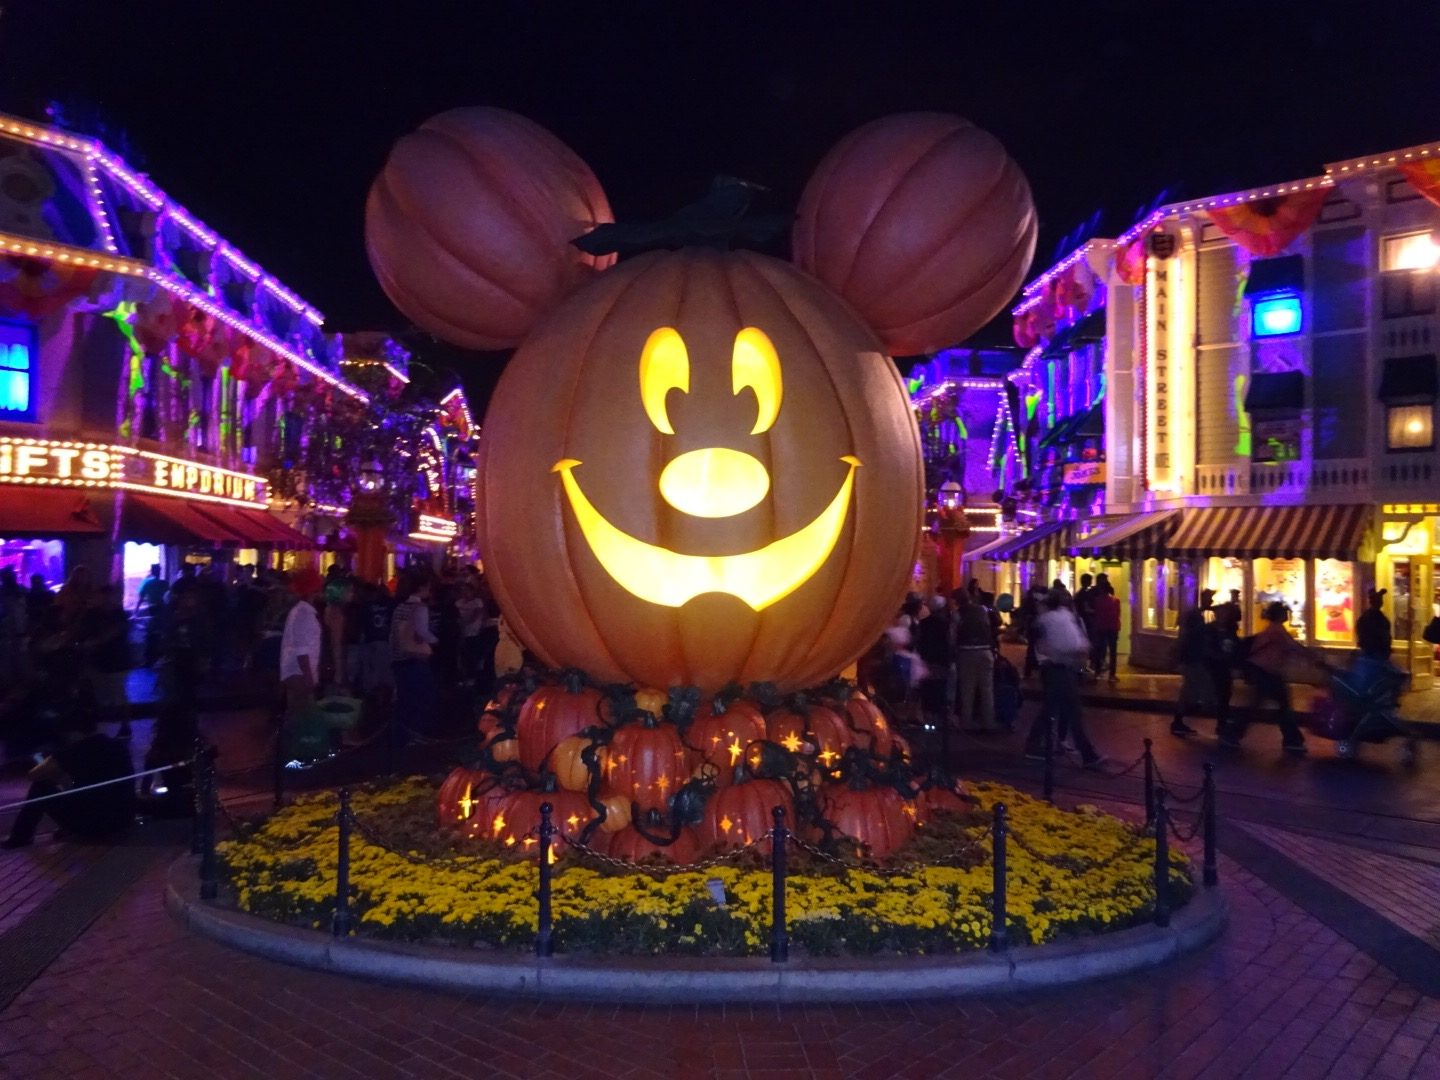 Tips & Tricks for Mickey's Halloween Party at Disneyland with Kids